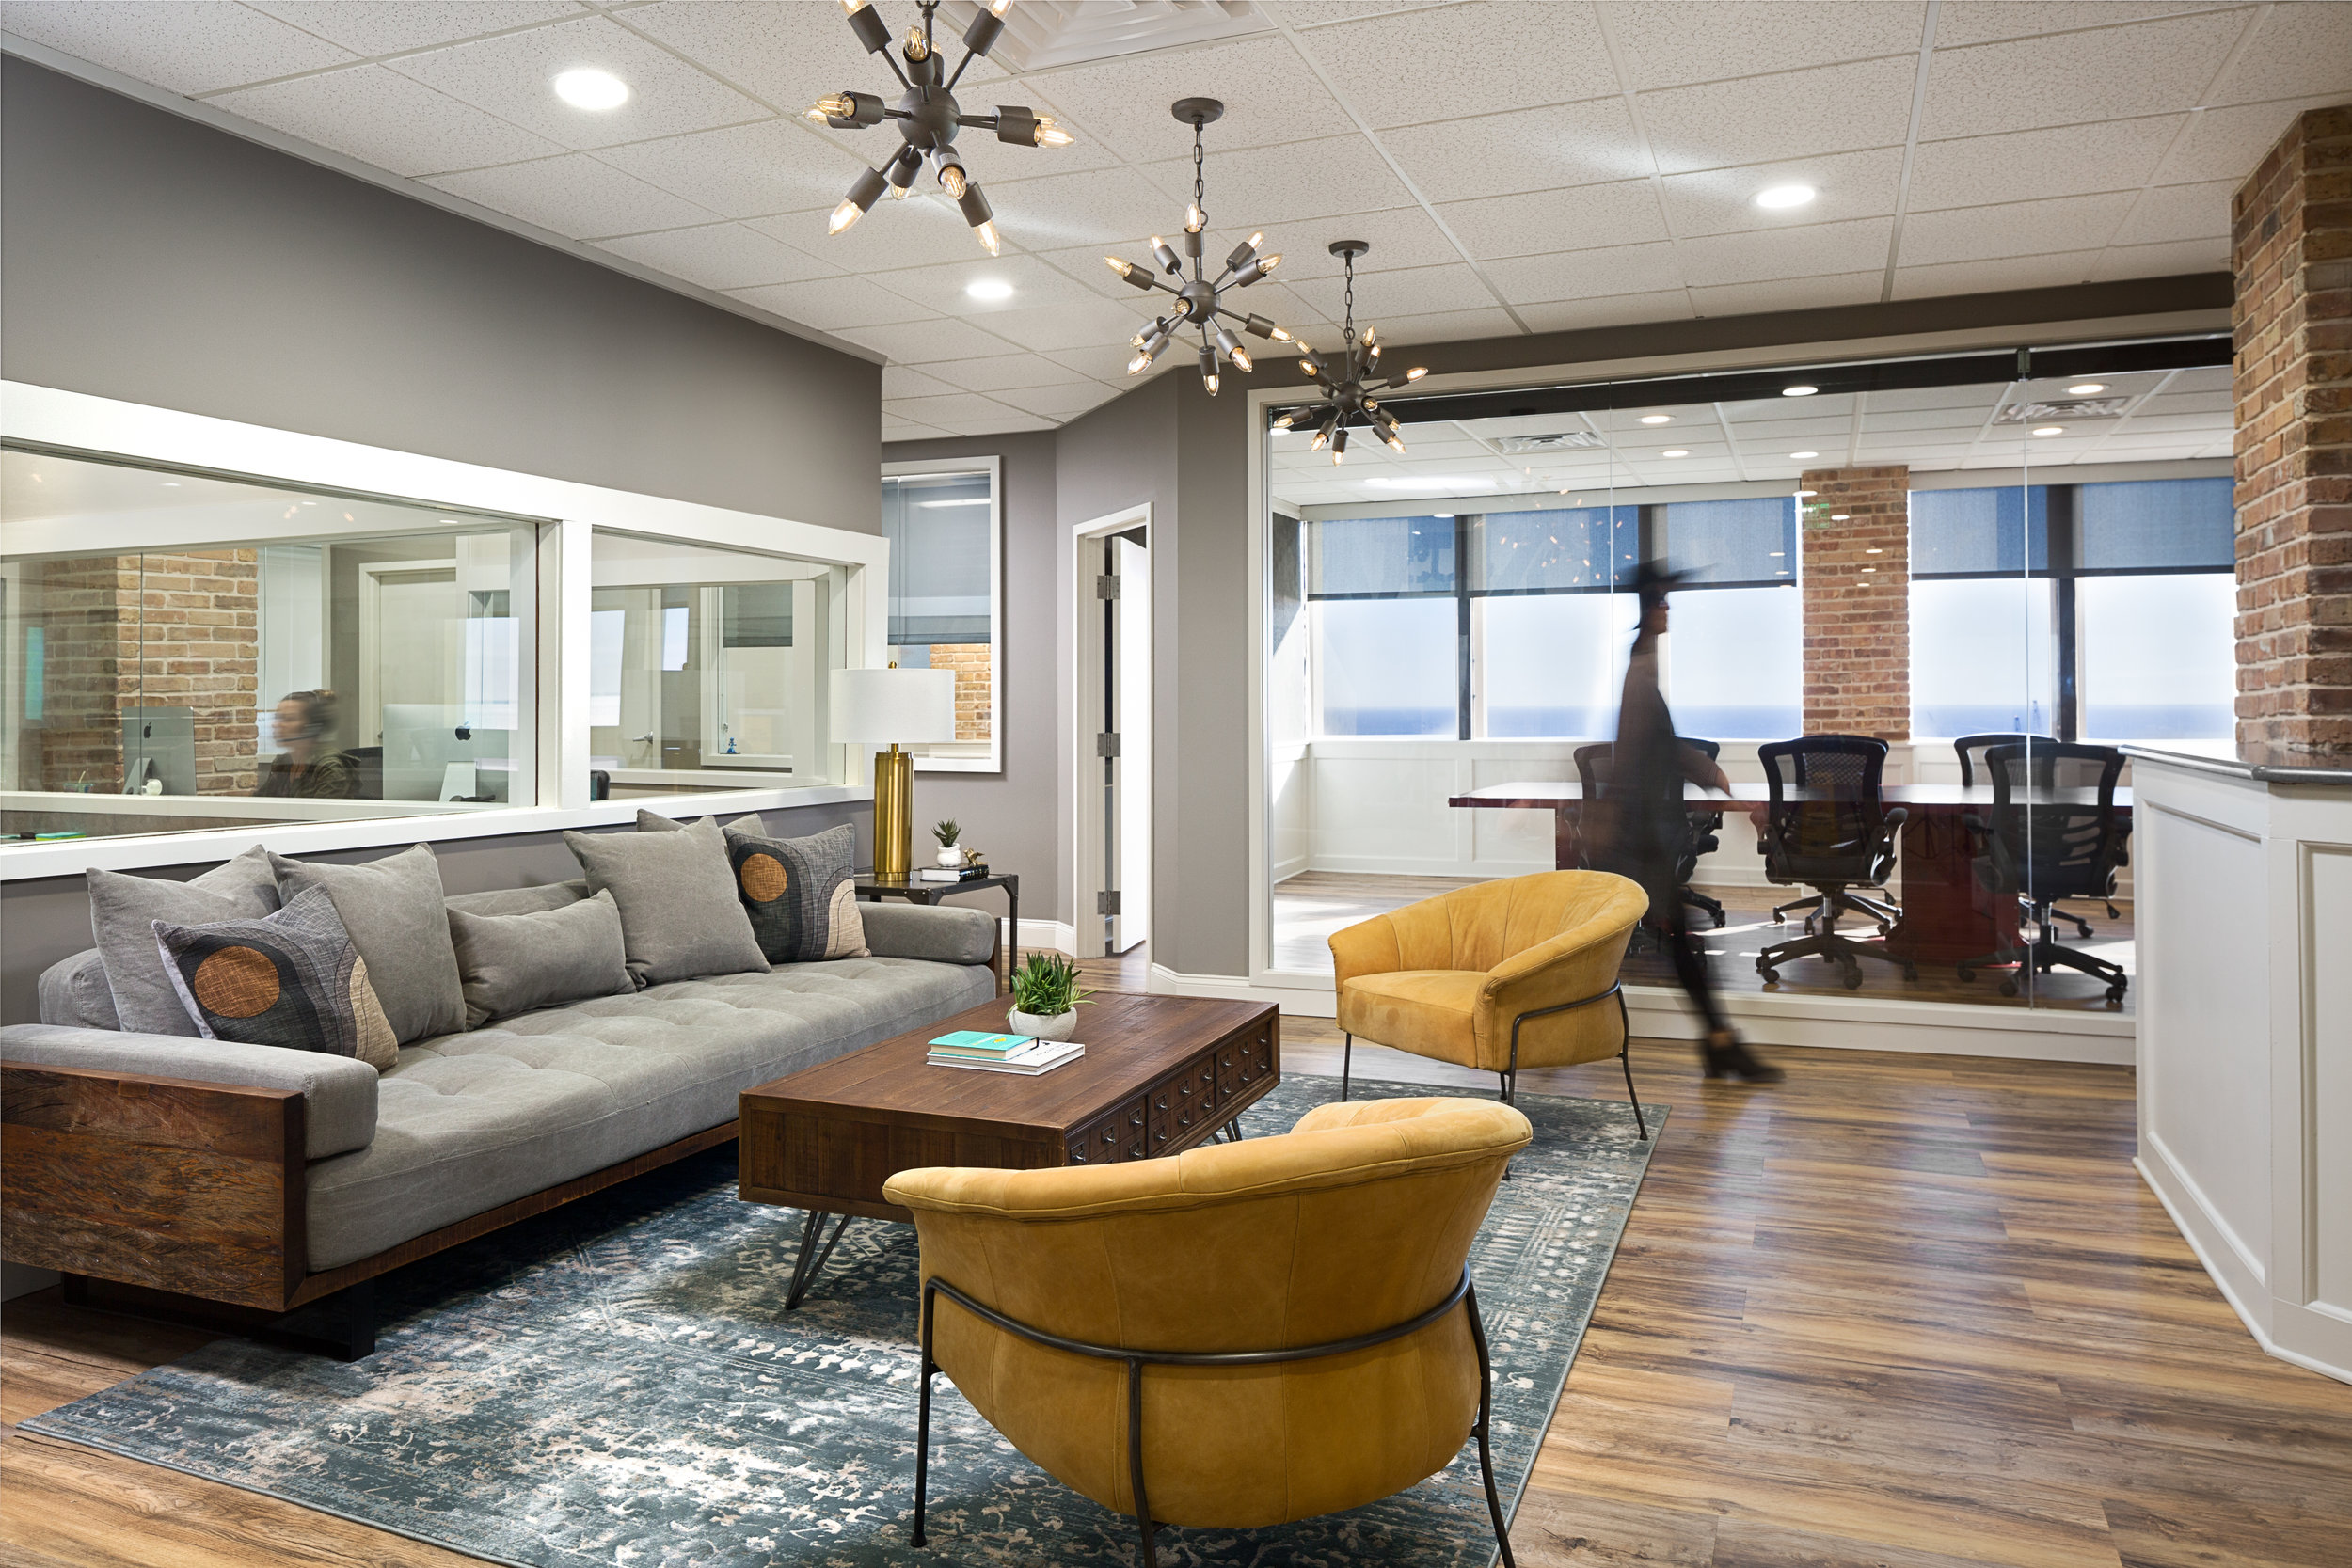 MAIN LOBBY AREA LOOKING INTO CONFERENCE ROOM | NATIVE HOUSE PHOTOGRAPHY